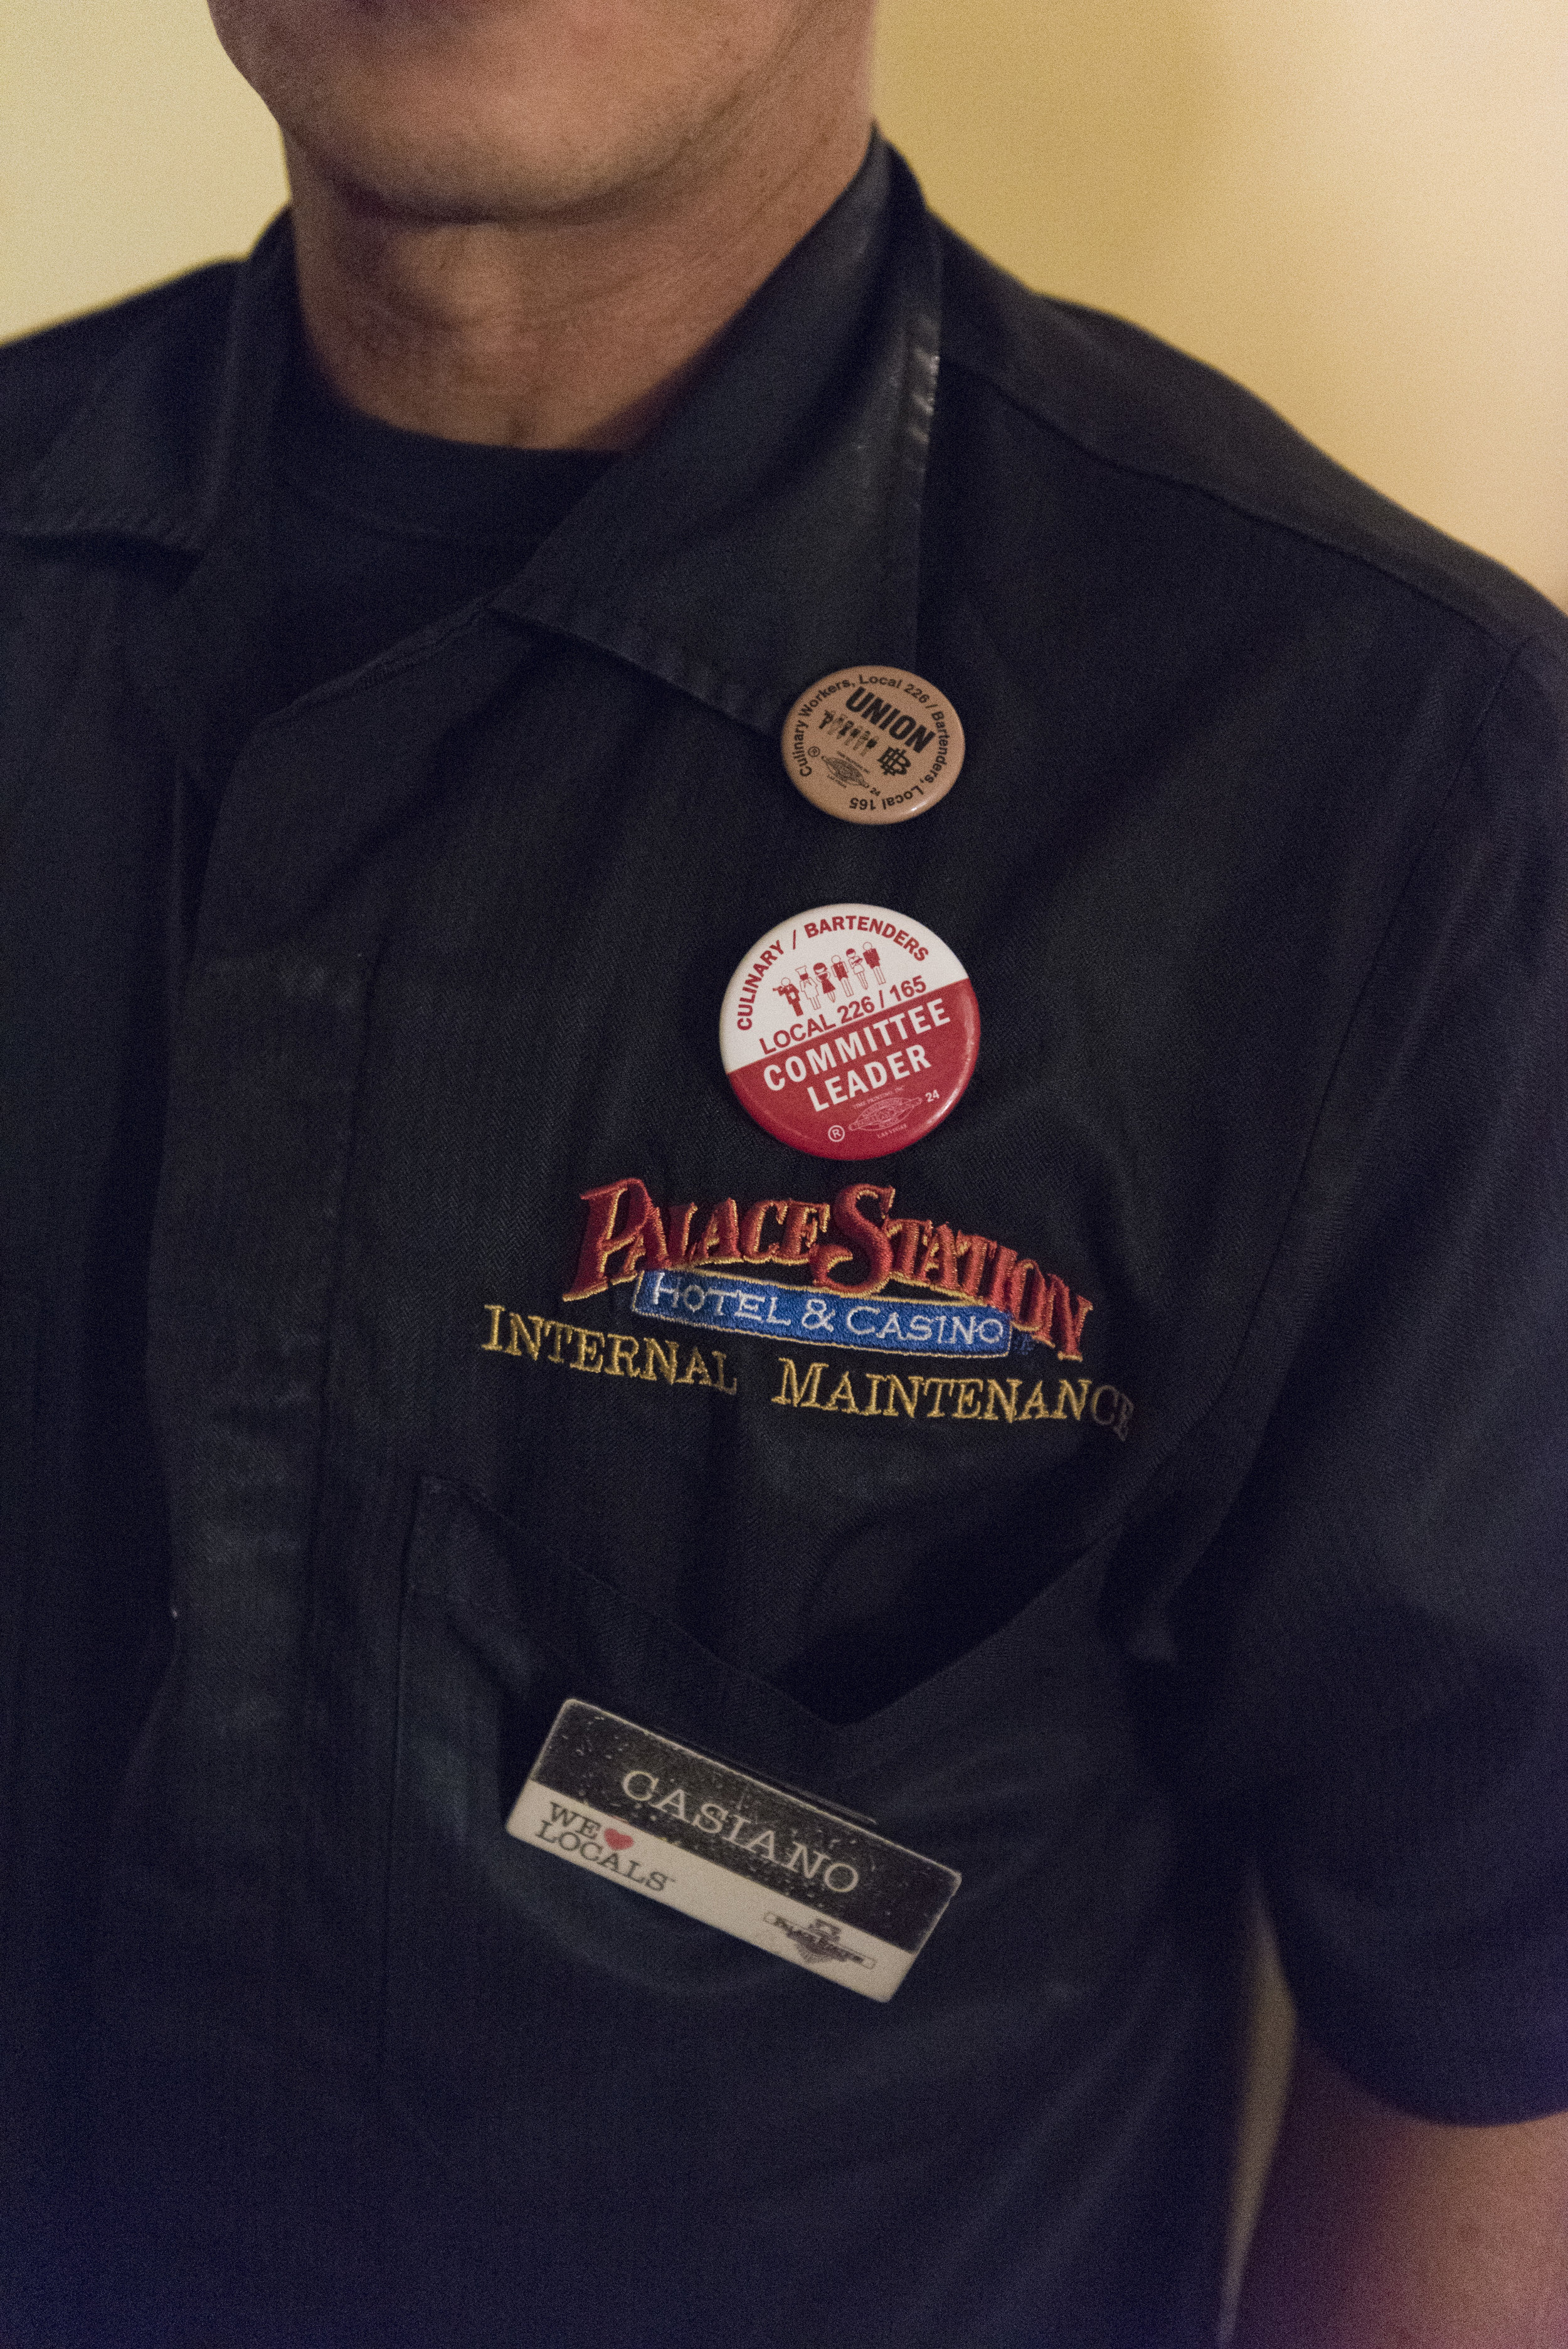 Casiano Corpus Jr., a porter at Palace Station hotel-casino, shows the pro-union buttons on his uniform before leaving to work a graveyard shift at Palace Station hotel-casino. Corpus is a union committee leader, advocating for the hotel to allow a union to be formed.